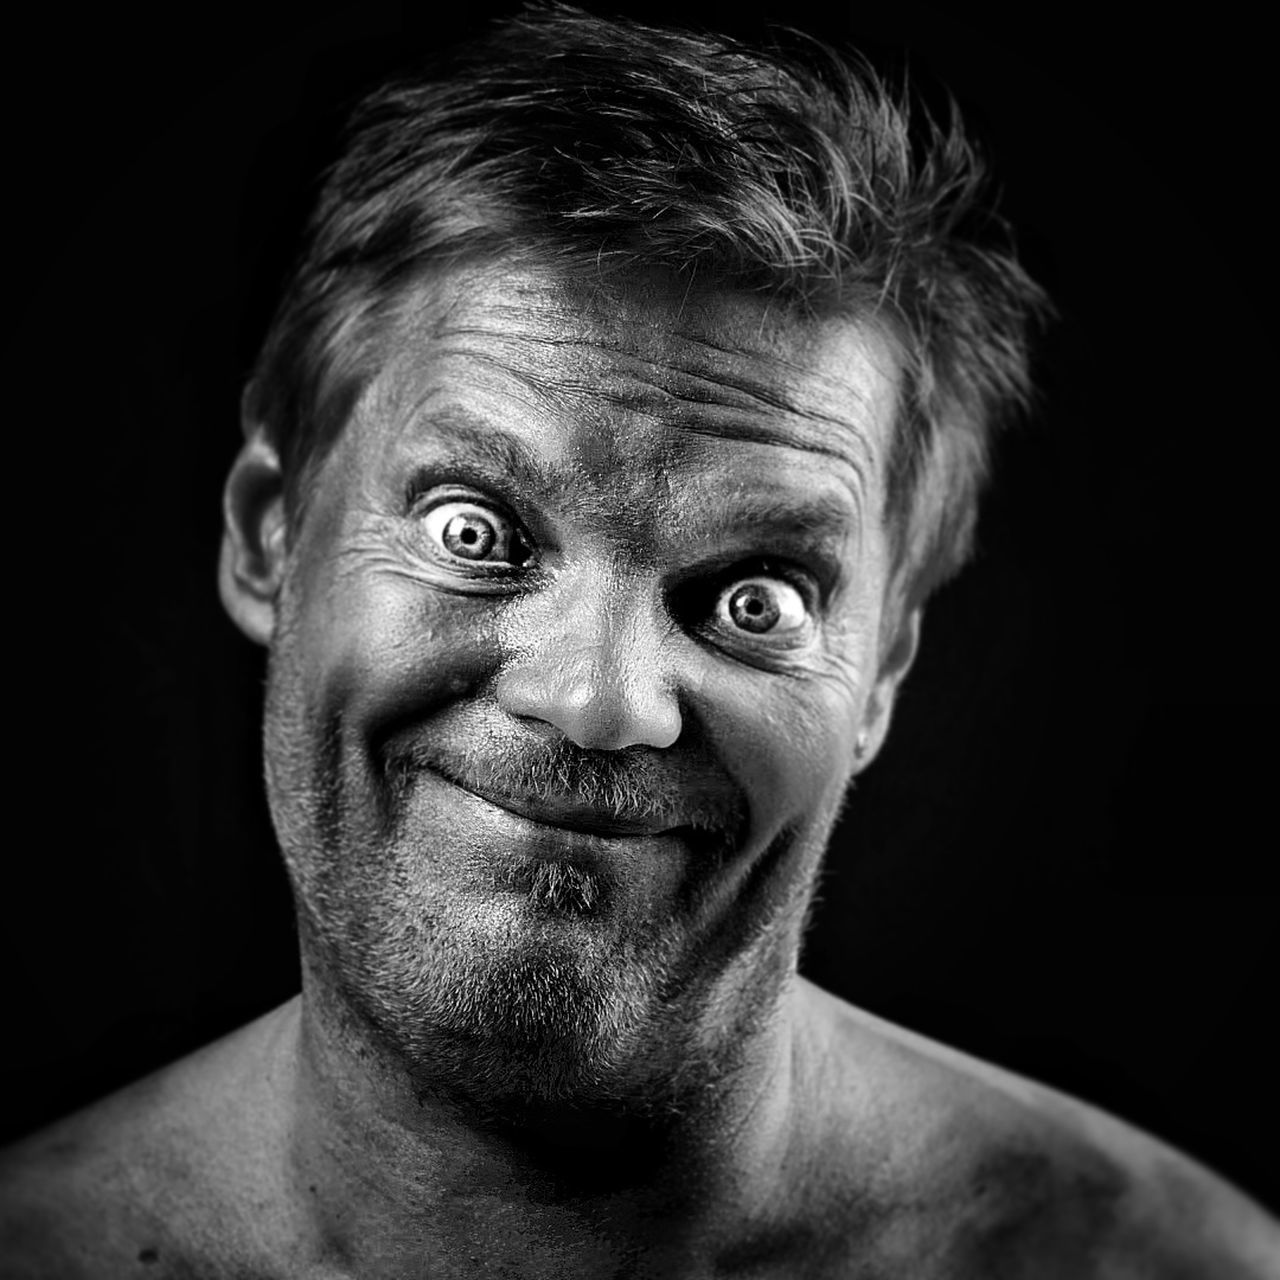 EyeEm Selects lol ThatsMe Portrait Looking At Camera Adults Only Black Background Mature Adult One Person Headshot Studio Shot Adult Human Face One Man Only People Human Body Part Only Men Senior Adult Close-up Real People Human Eye Indoors  Young Adult Blackandwhite Photography